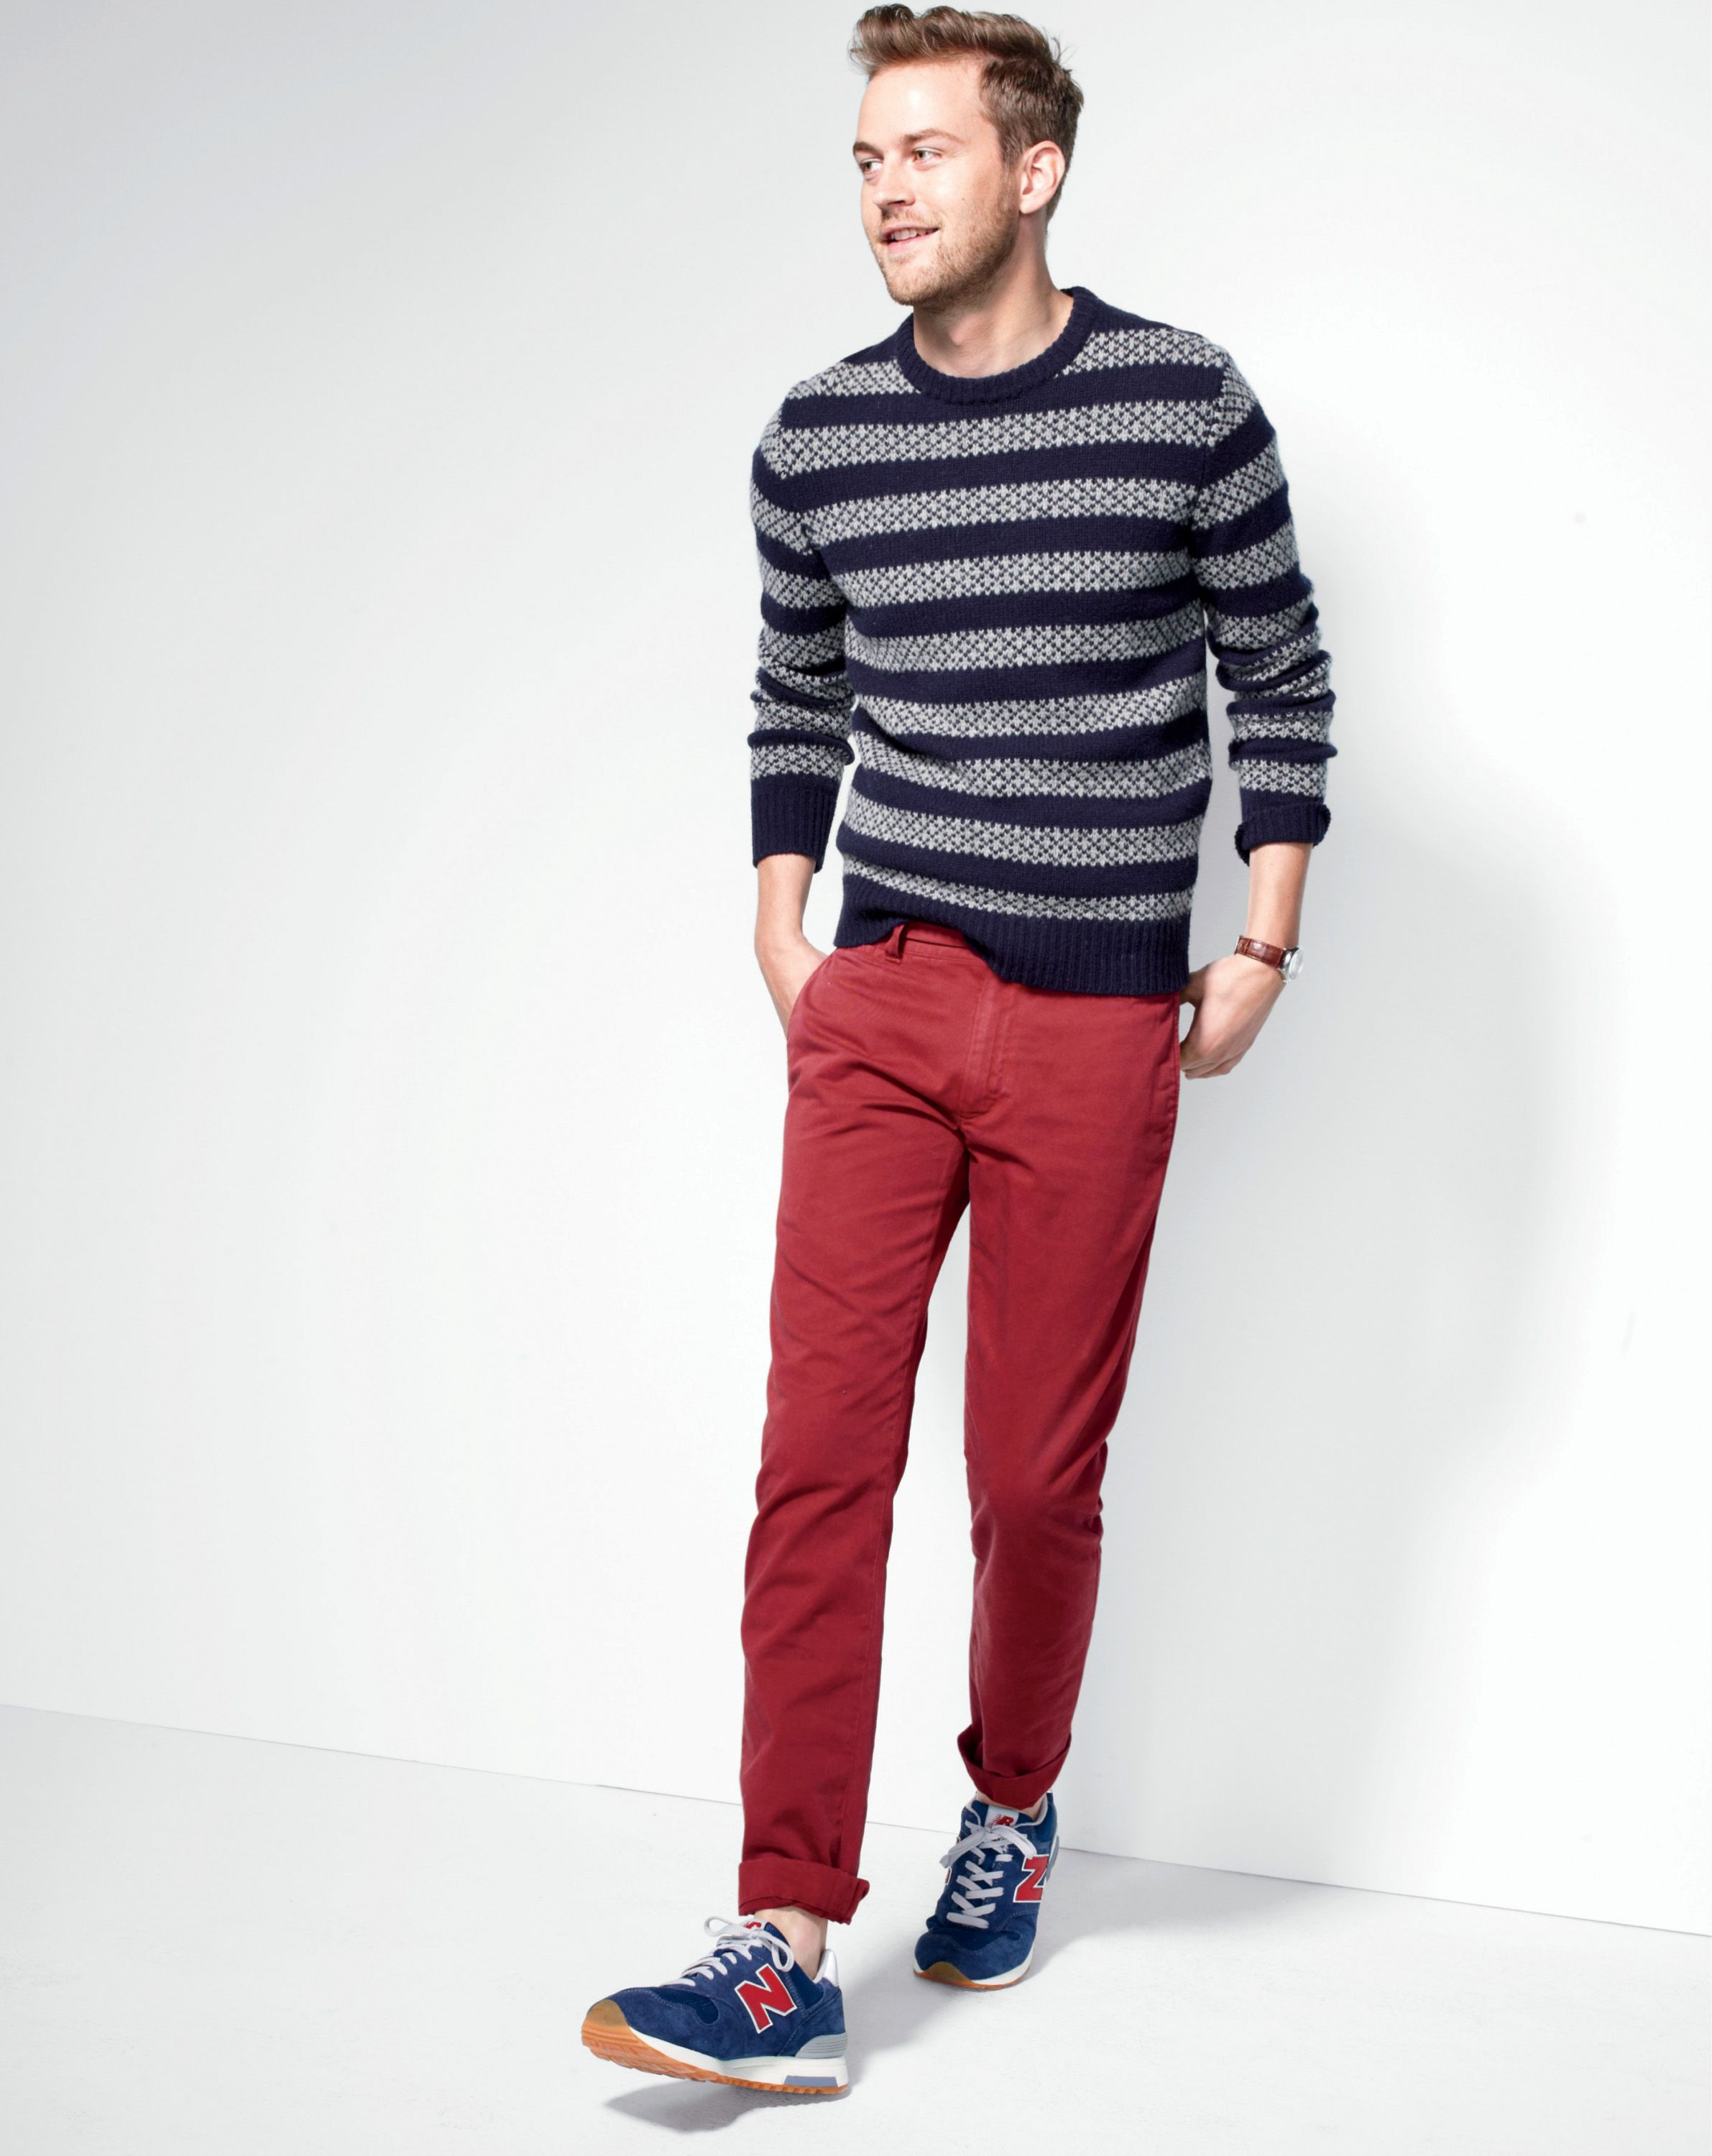 Cute sweater and pants looks pinterest jcrew and menus fashion